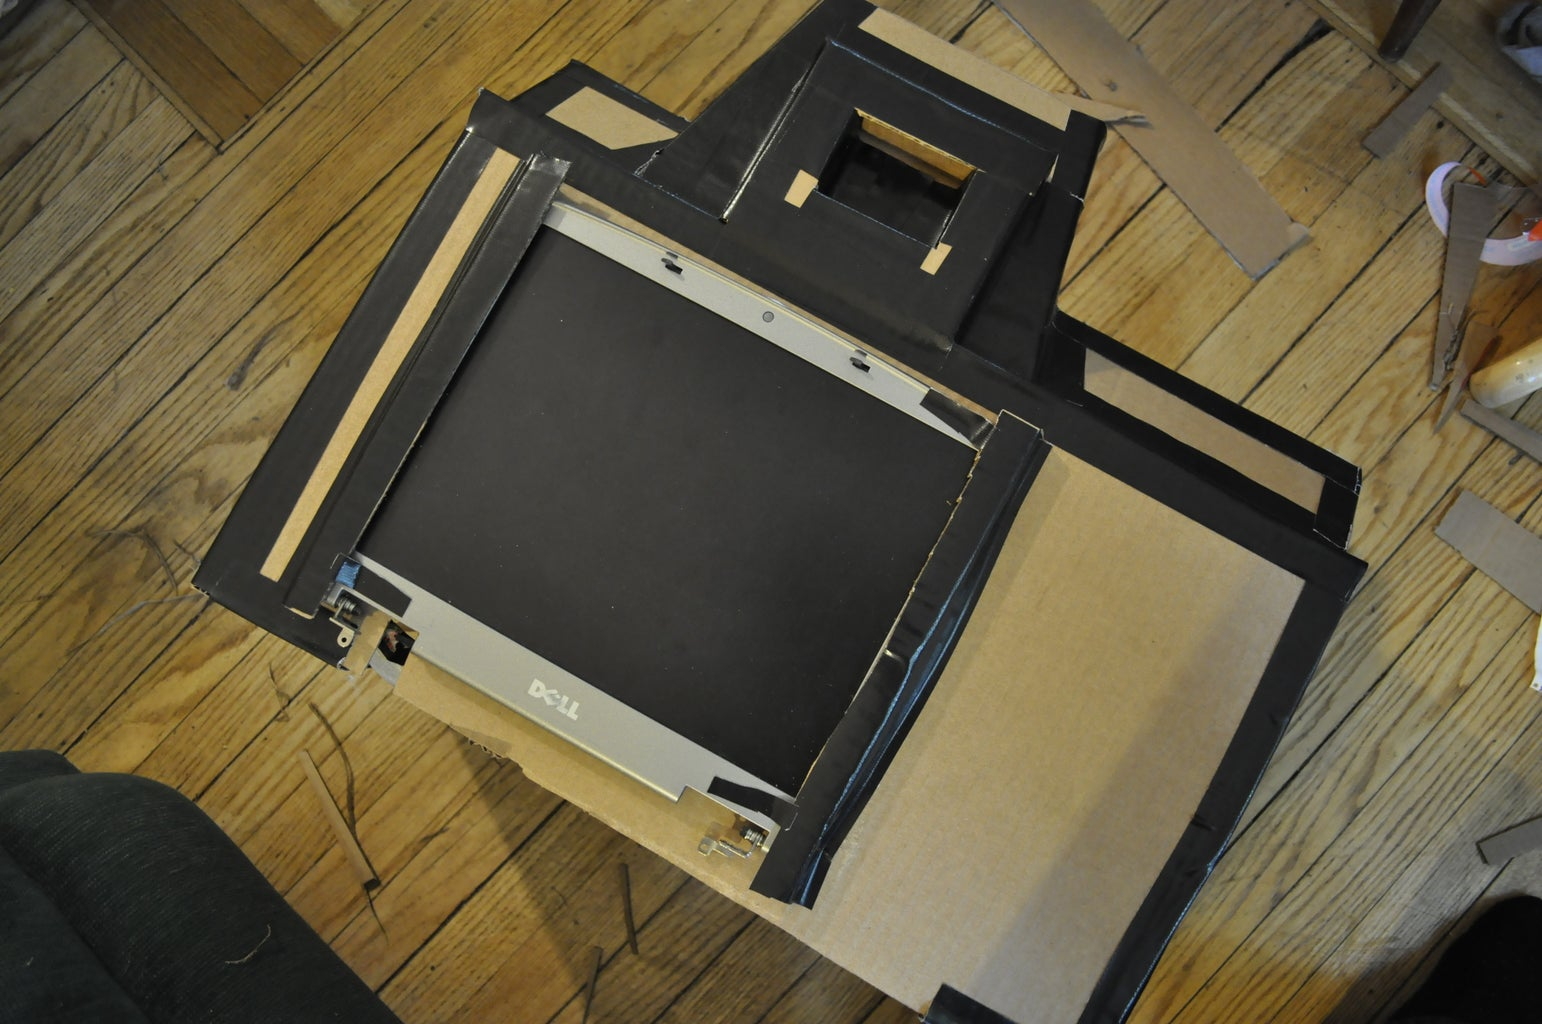 Mount the LCD Display